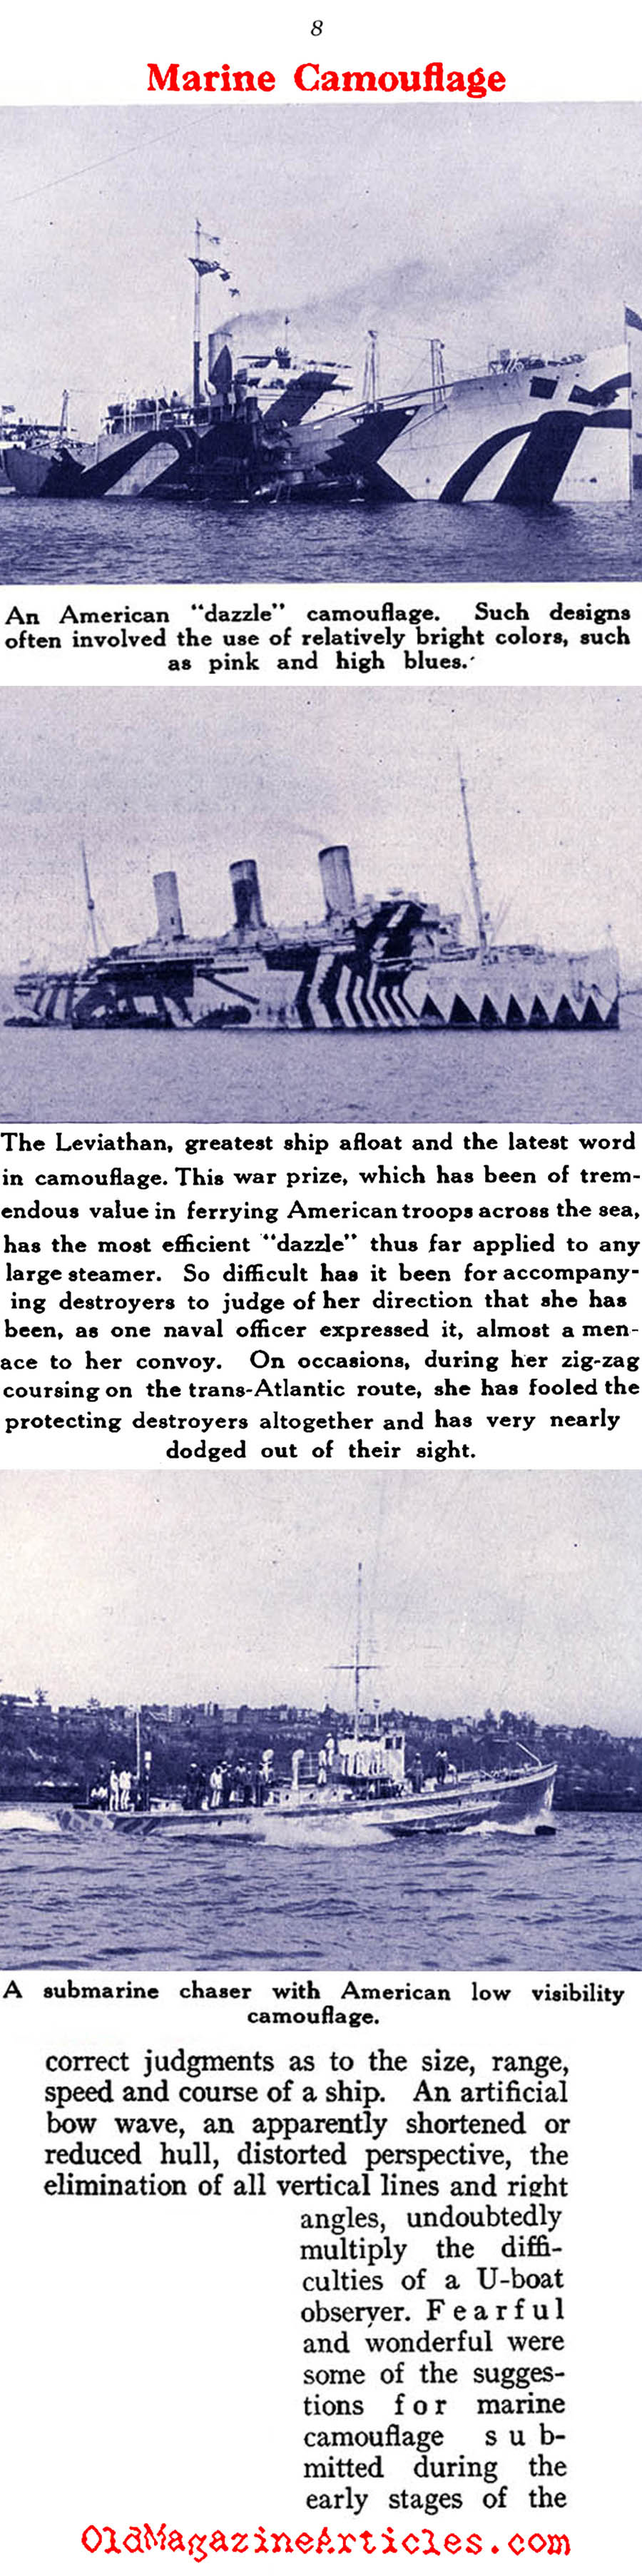 Naval Camouflage of W.W. I (Sea Power Magazine, 1919)